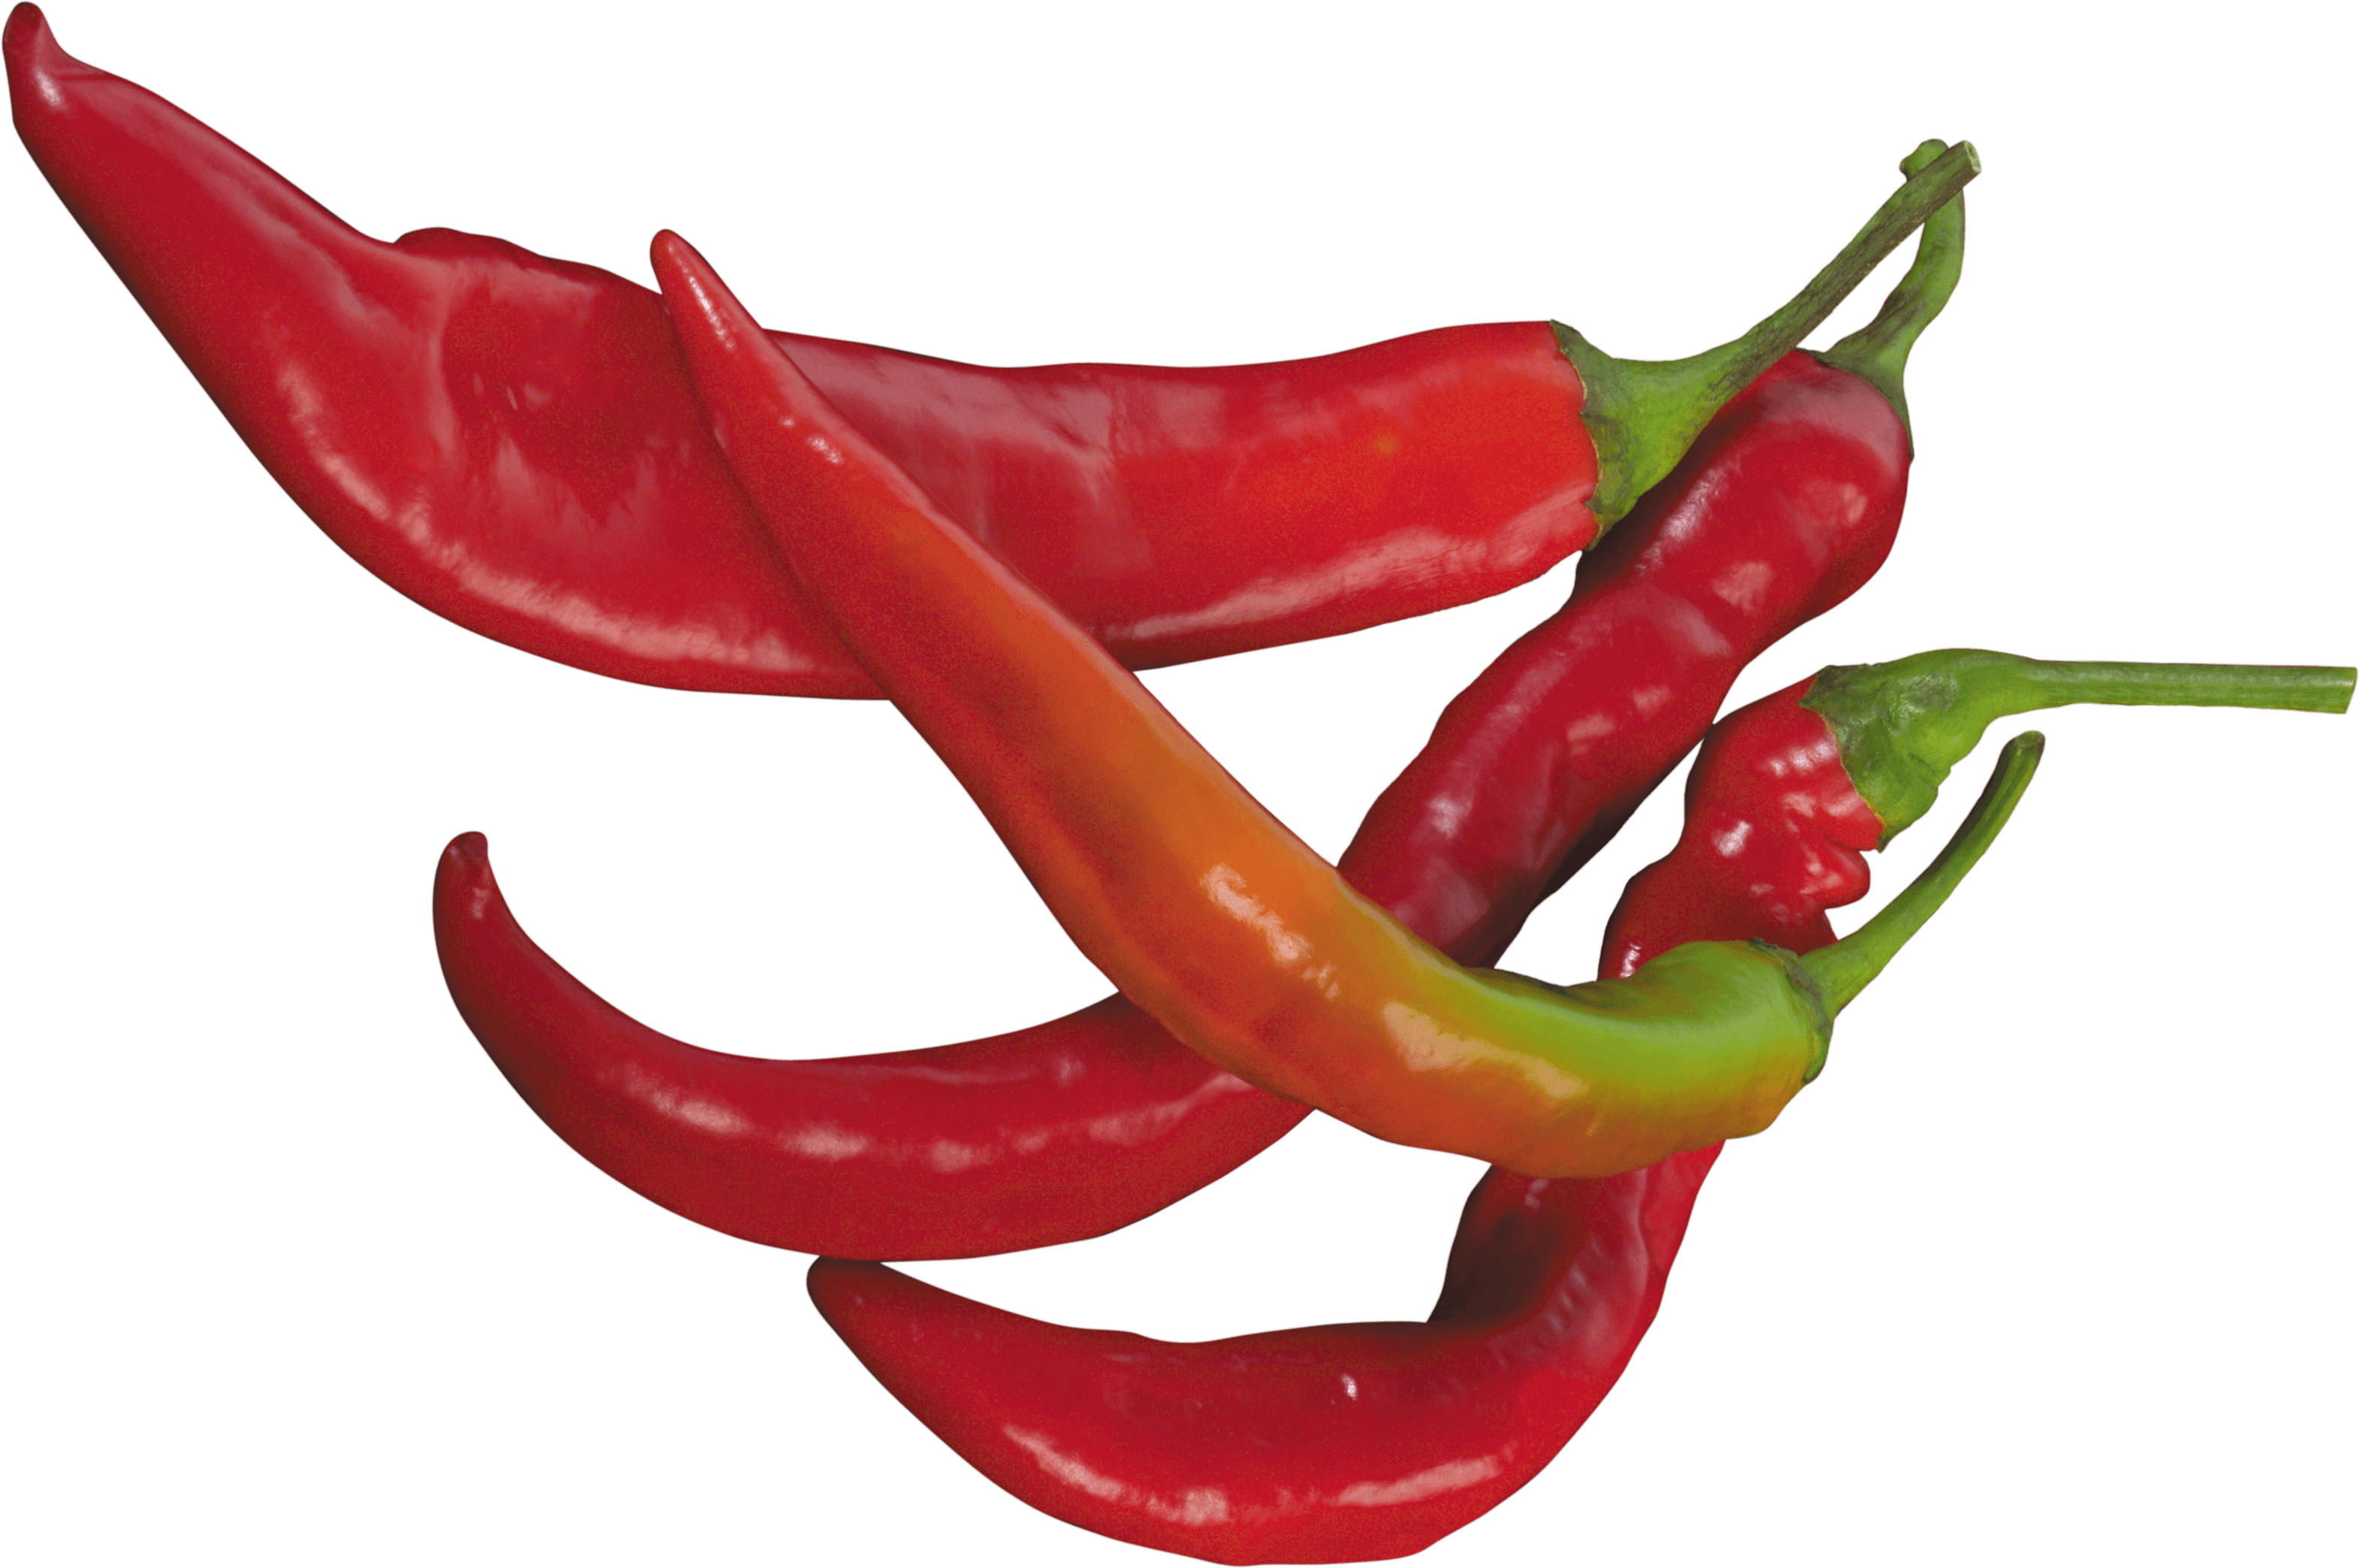 Red Chili Pepper Png Image PNG Image